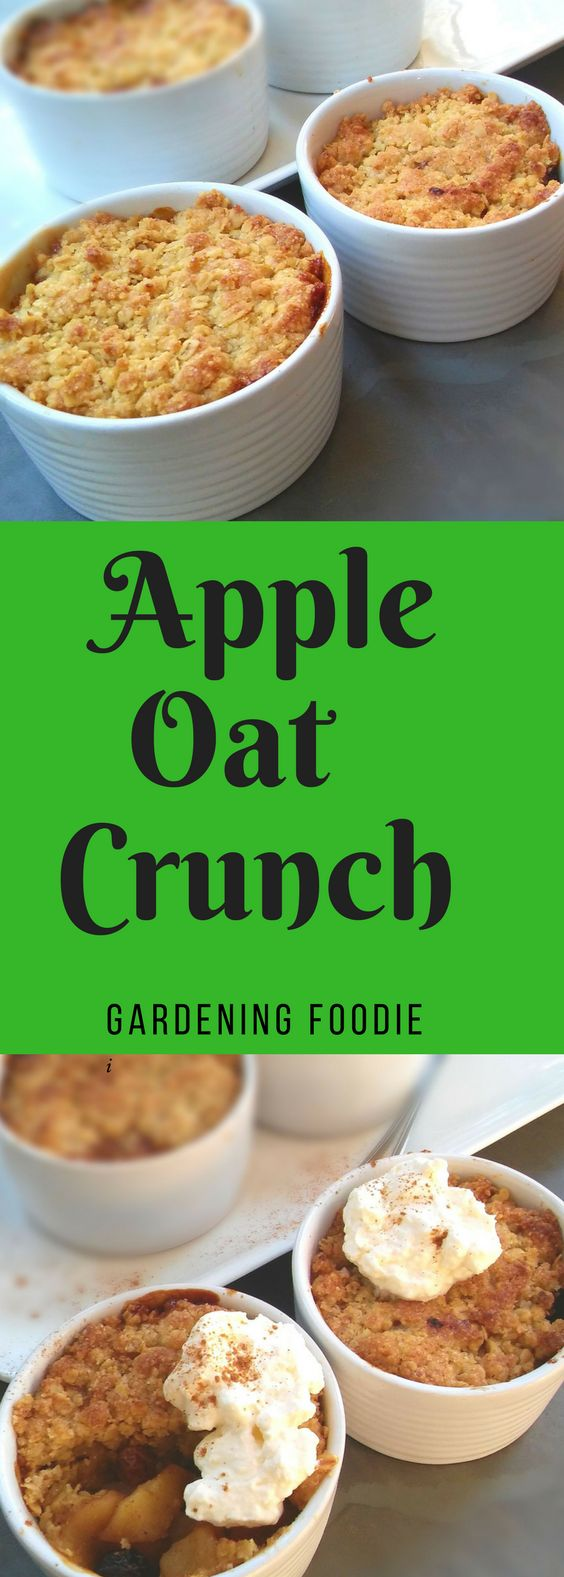 Don't you just love easy to prepare breakfasts and desserts? Like with this Apple Oat Crunch which takes just 5 minutes to prepare and 10 minutes in the oven to create a crunchy golden brown topping. It really makes an amazingly quick dessert or breakfast to prepare.